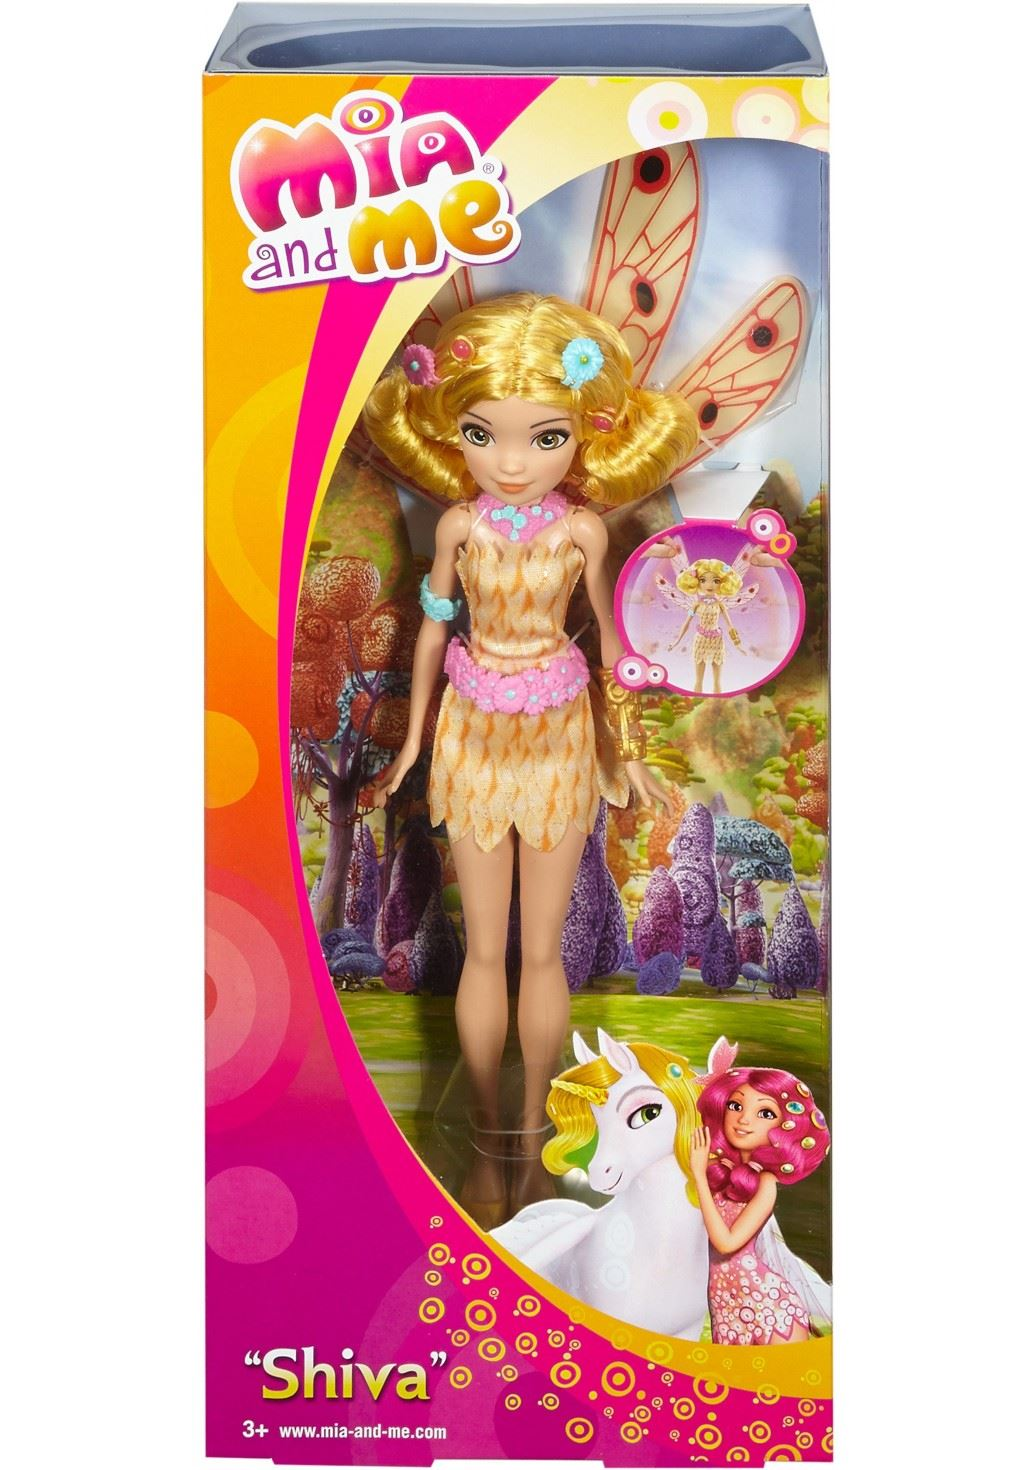 Mia-And-Me-Mia-Yuko-Shiva-Doll